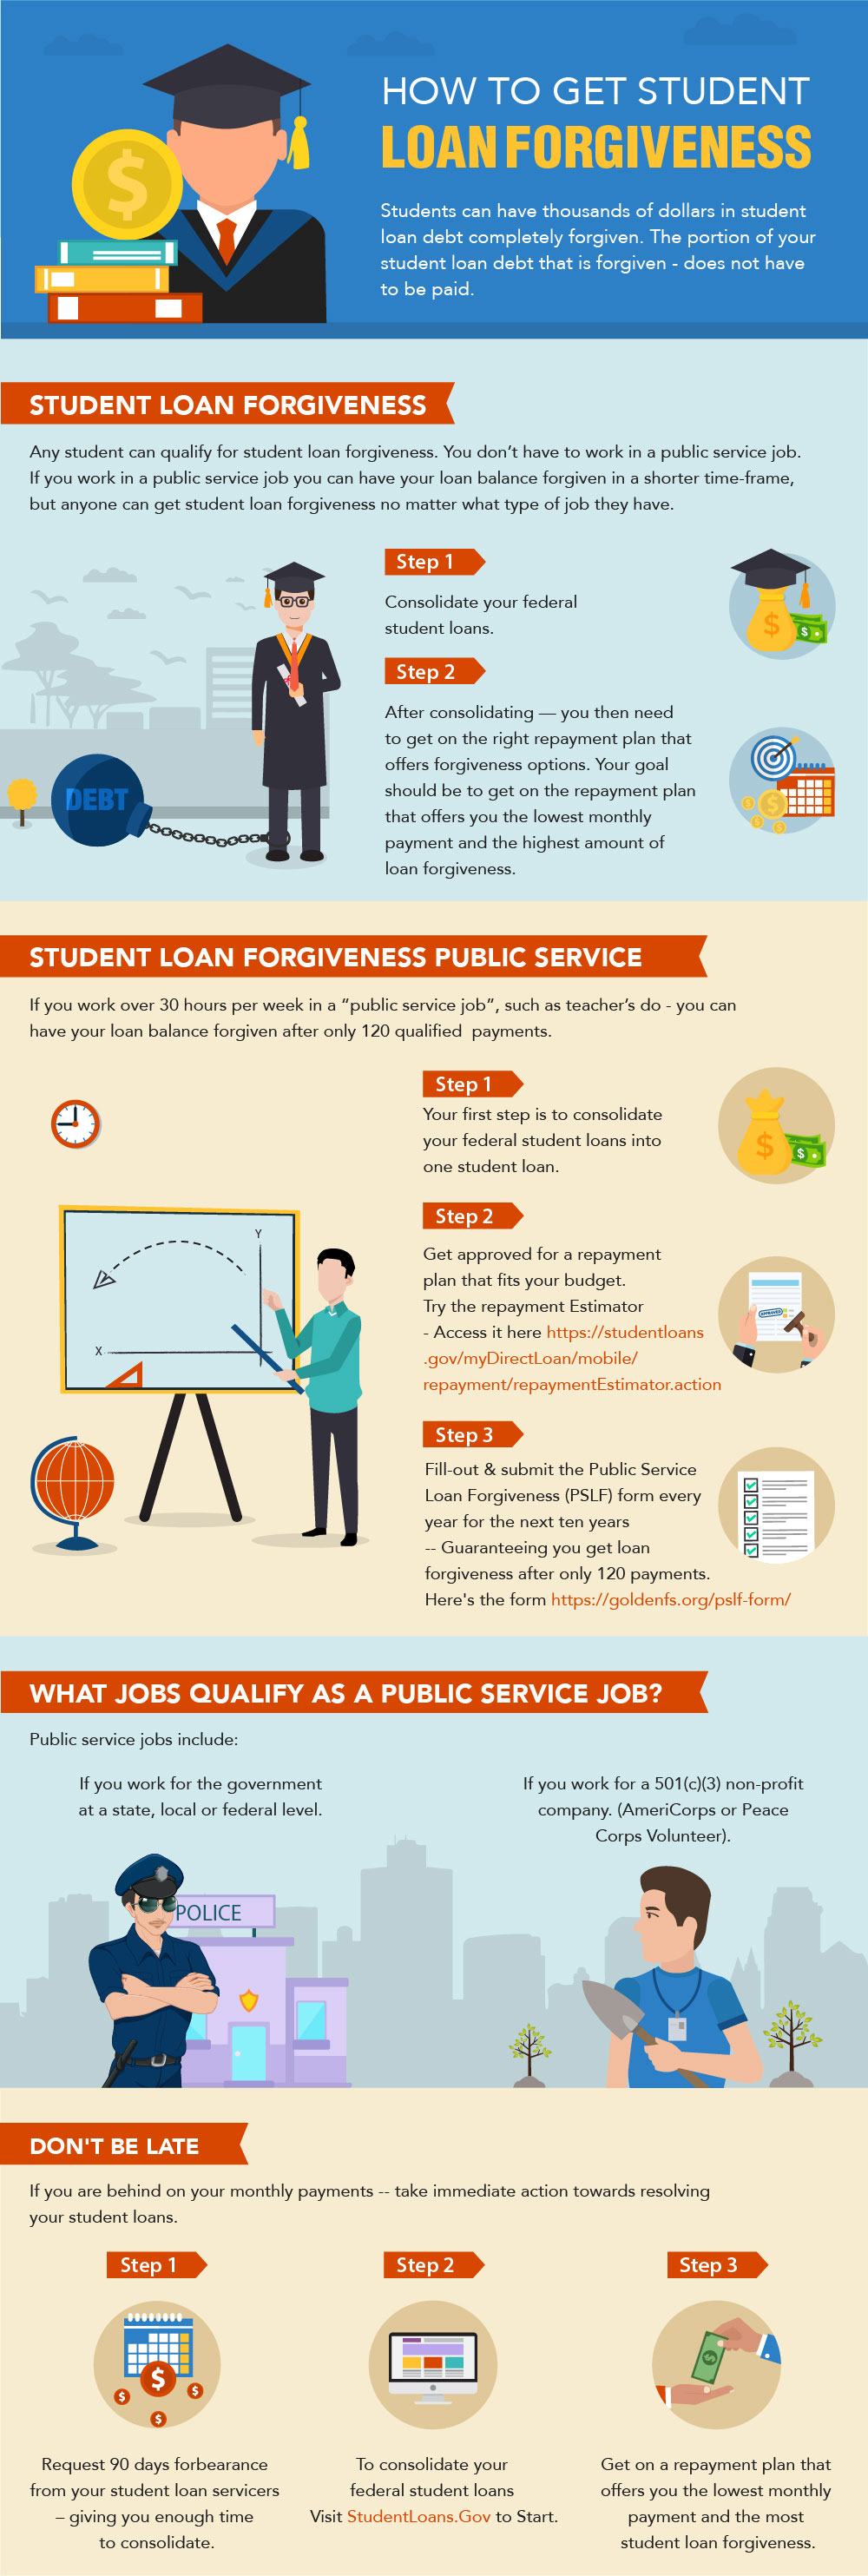 16 Easy Steps to Getting Your Student Loan Forgiven! - Infographic